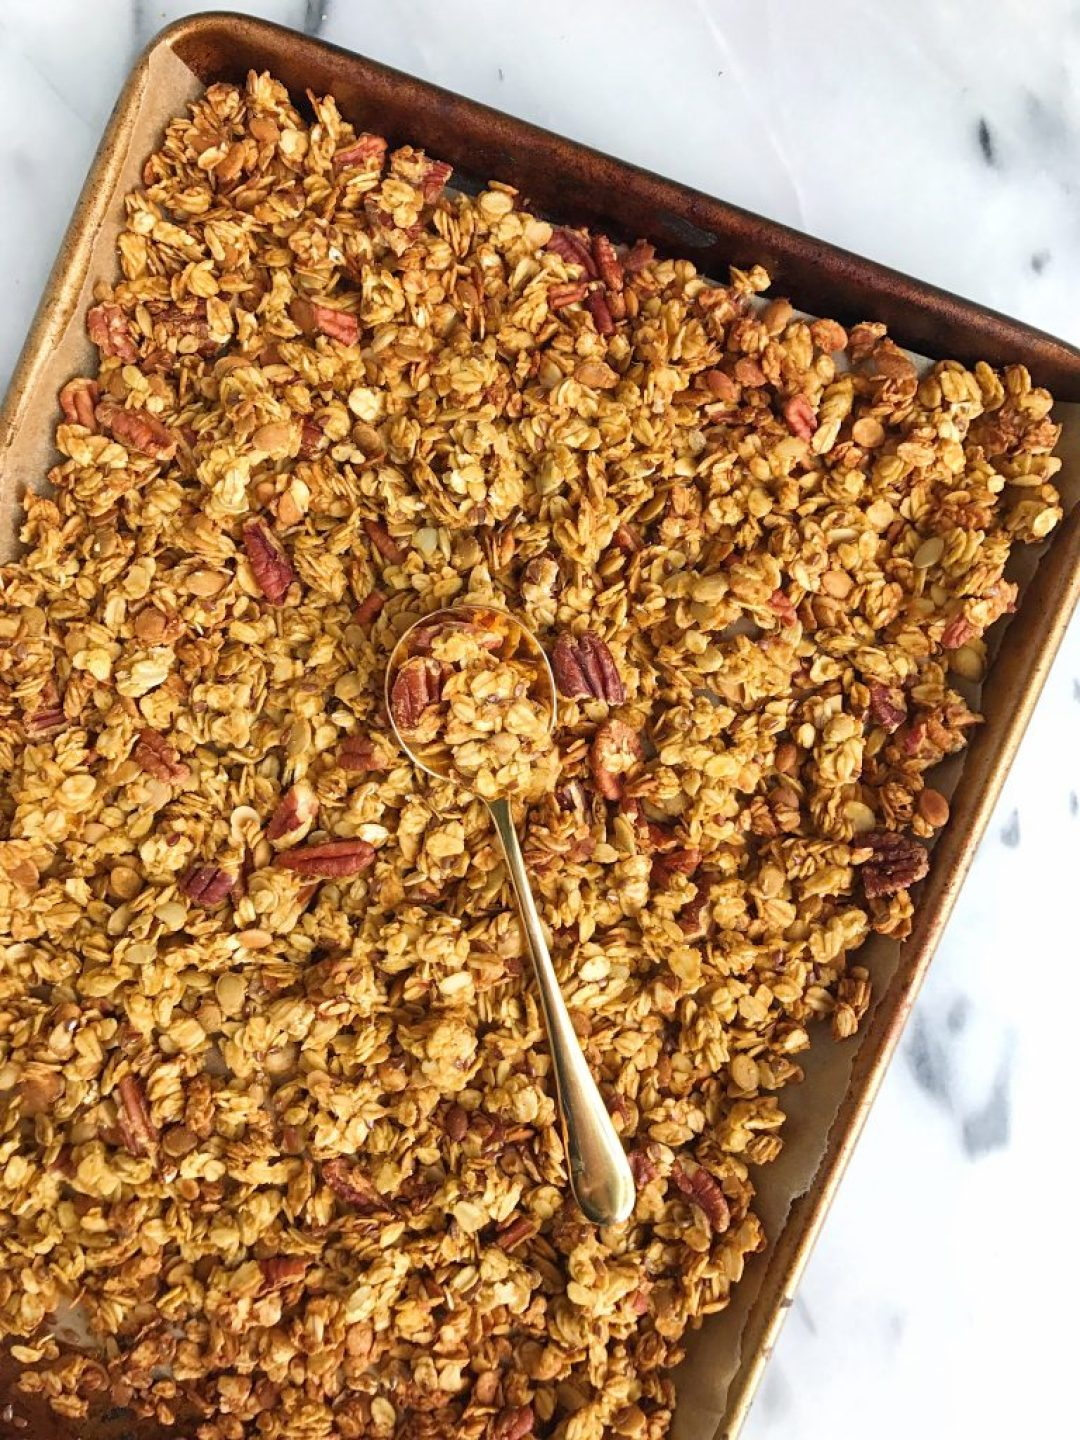 Crunchy Nutty Pumpkin Pie Granola for an easy gluten-free and vegan granola!